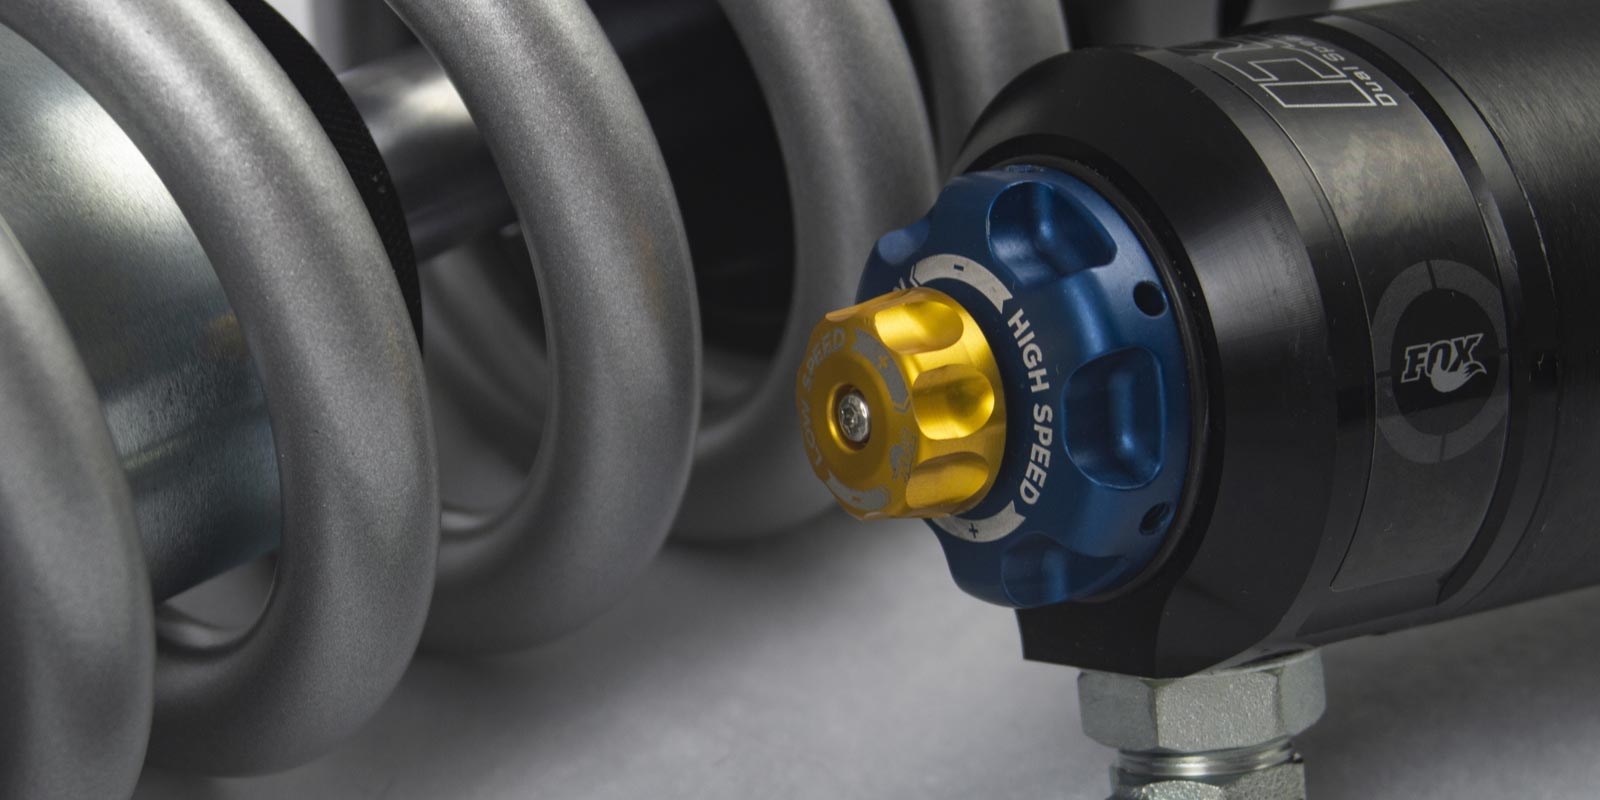 Adjustable Shock Absorbers in Action